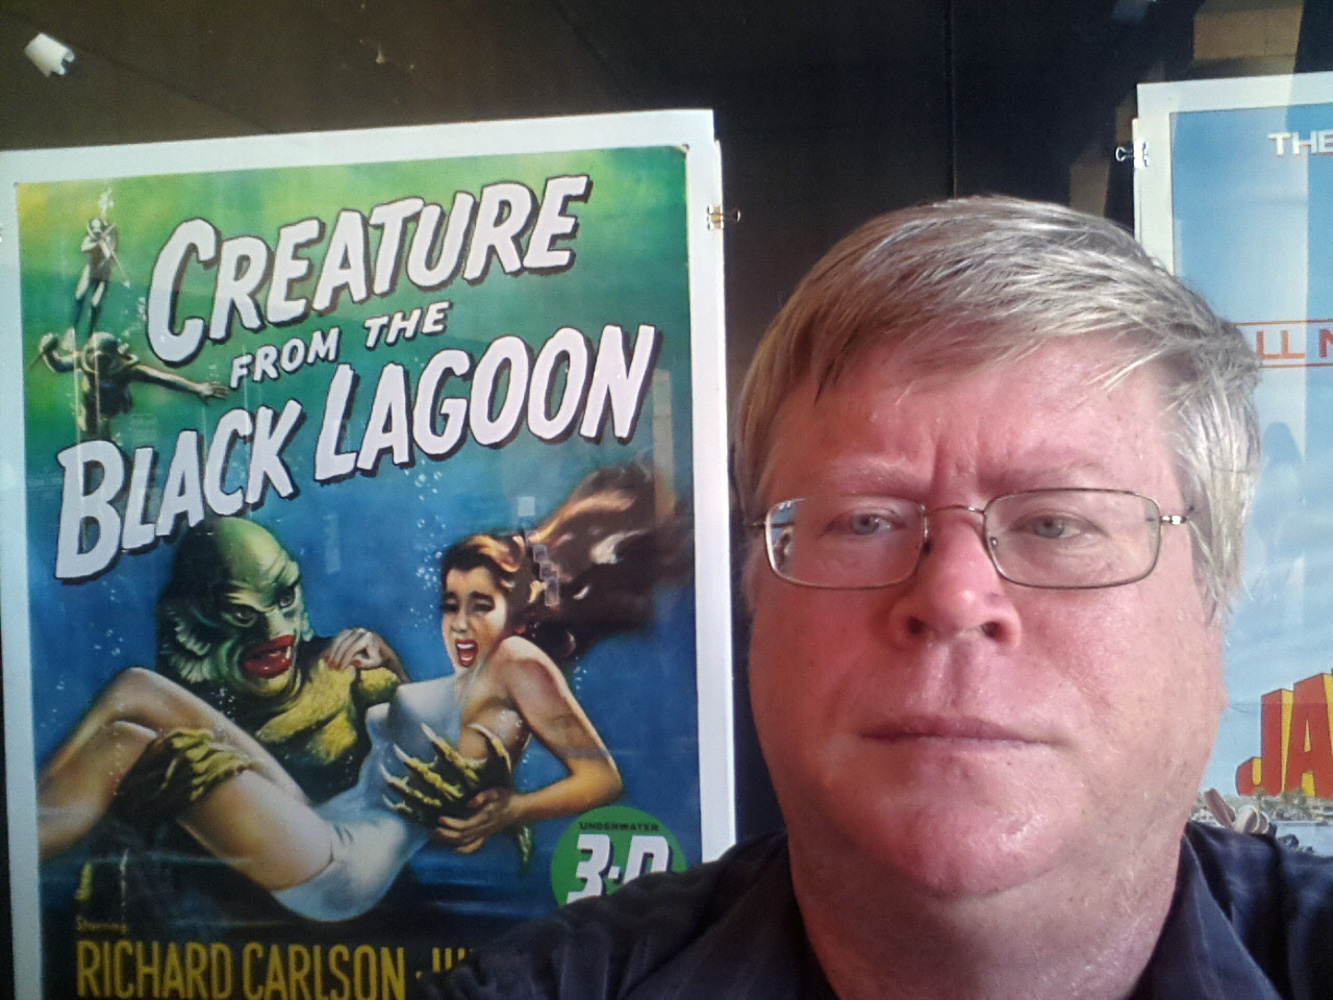 Attending a 3D Film festival in Hollywood at Grauman's Egyptian Theatre. Movie poster for the 3D moview Creature from the Black Lagoon